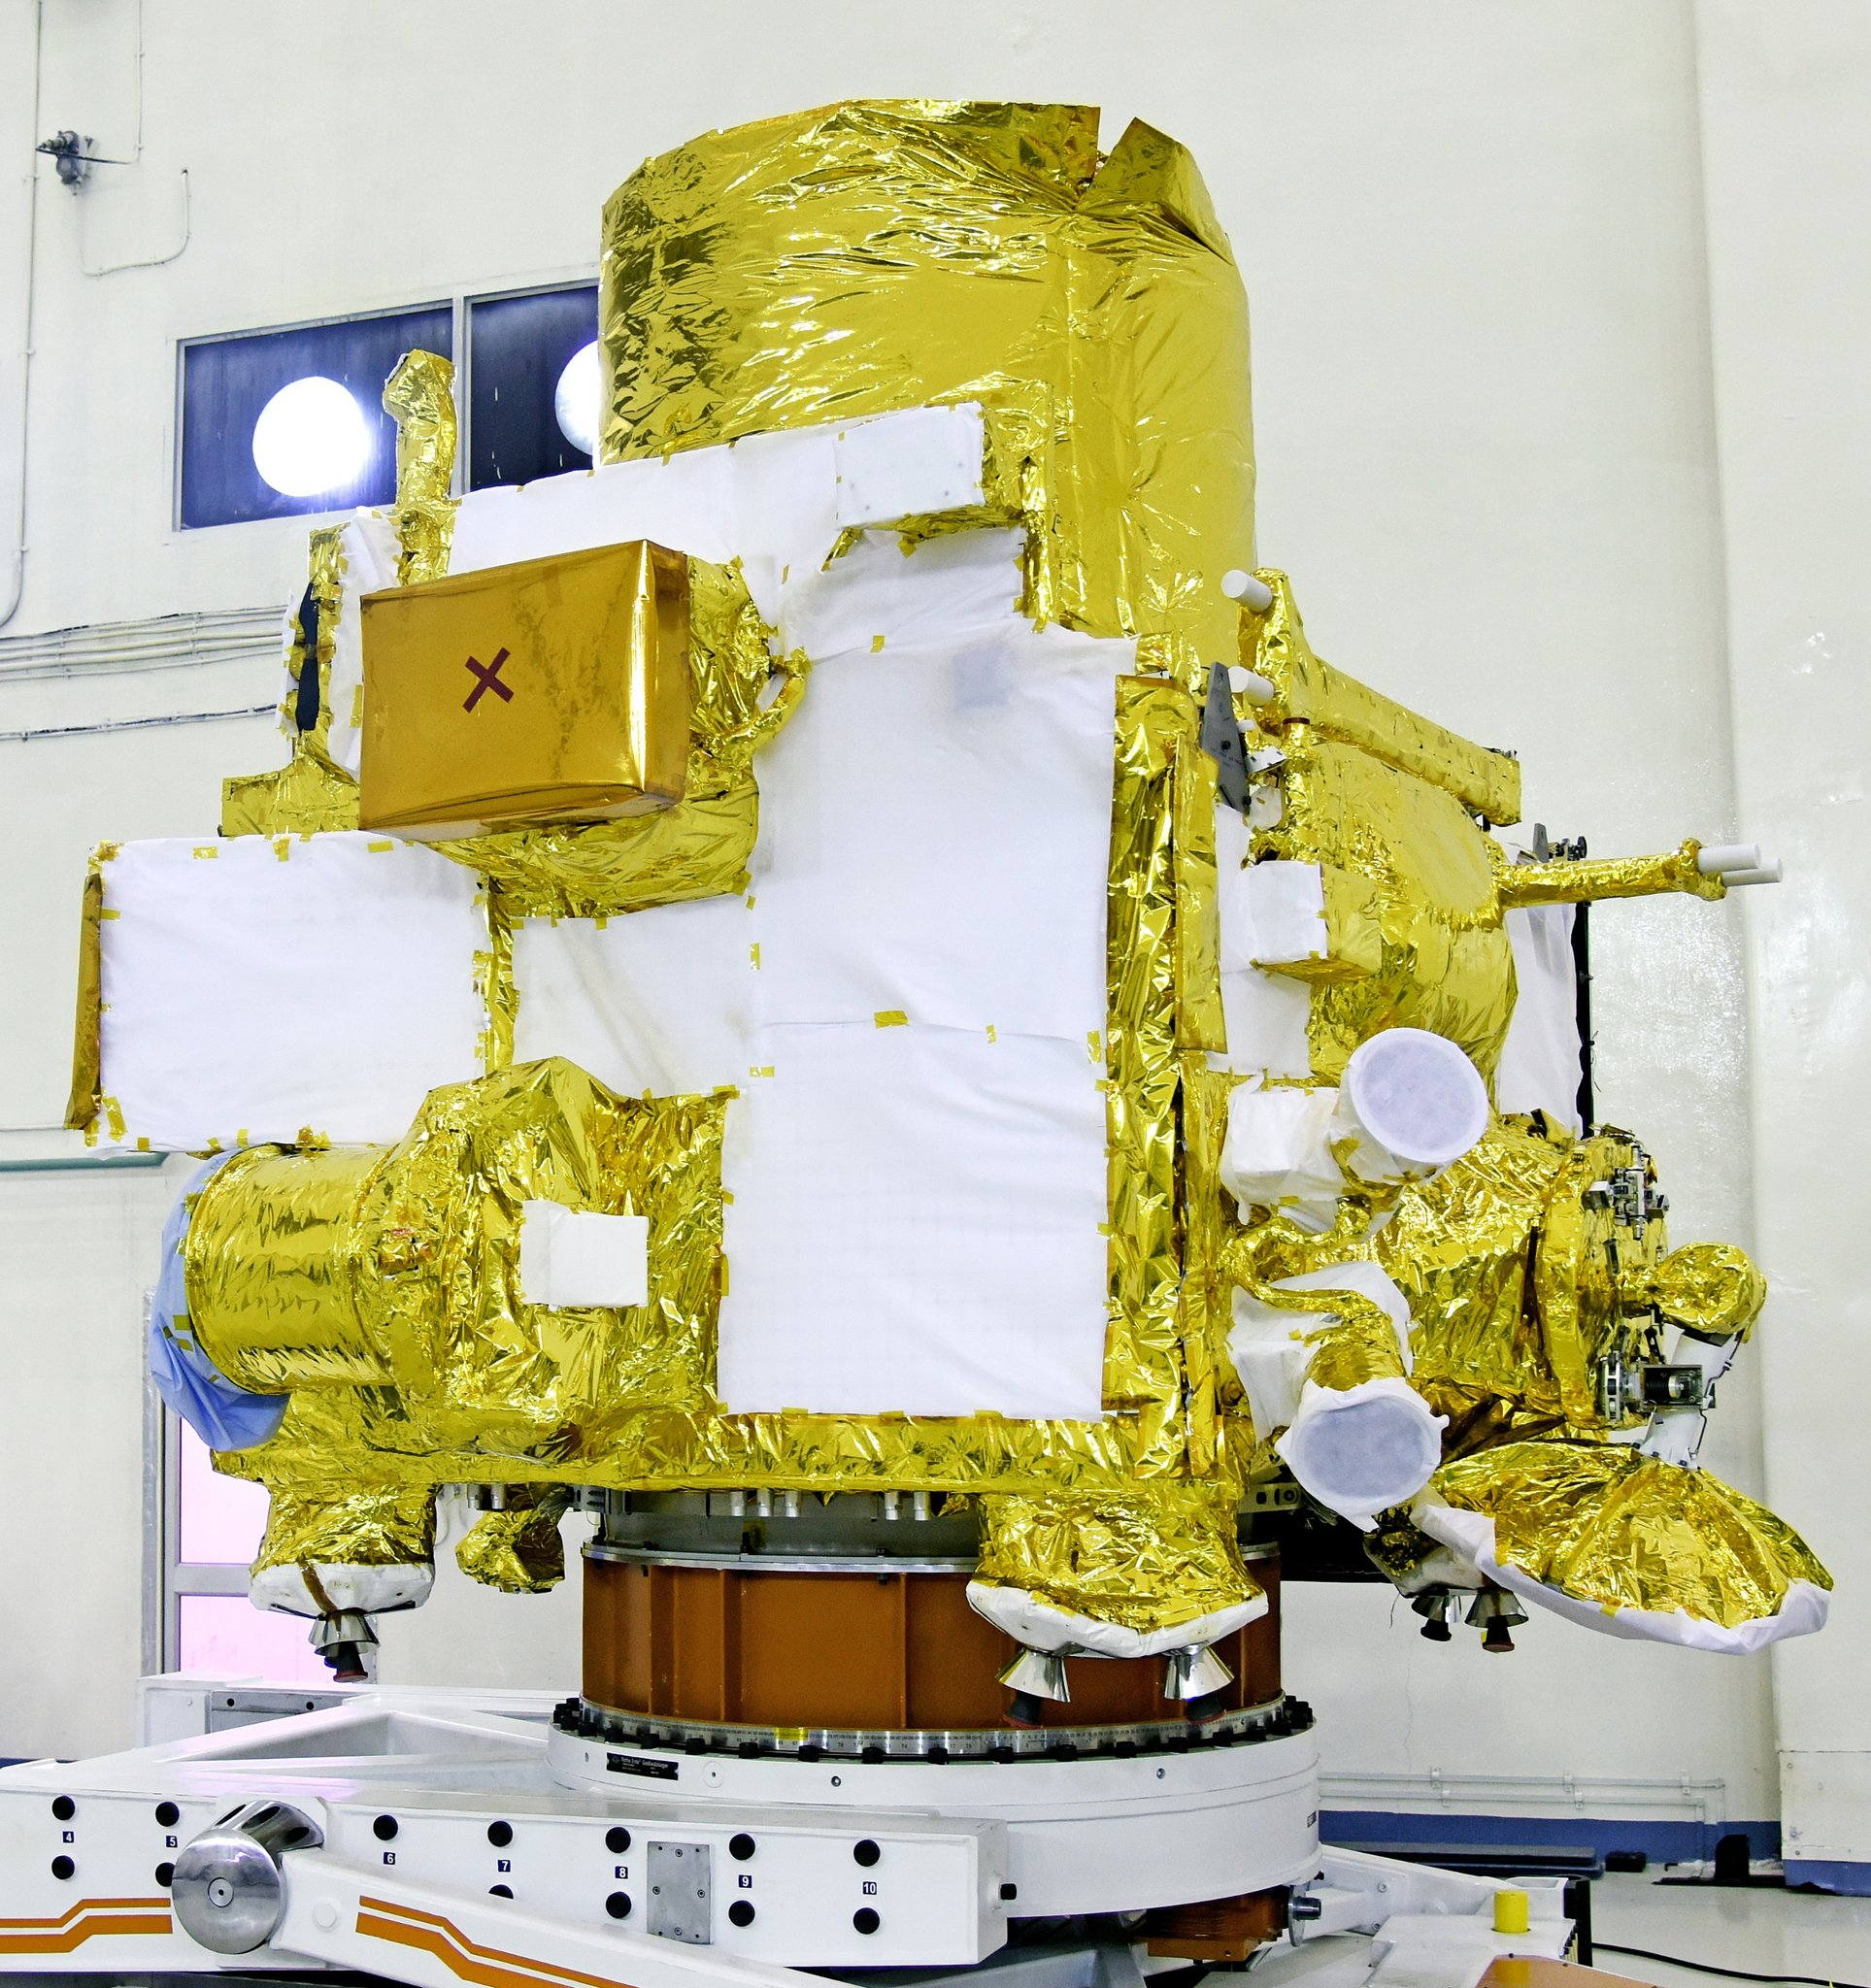 Chandrayaan-2 Will Be The First Attempt to Land On The South Pole of the Moon